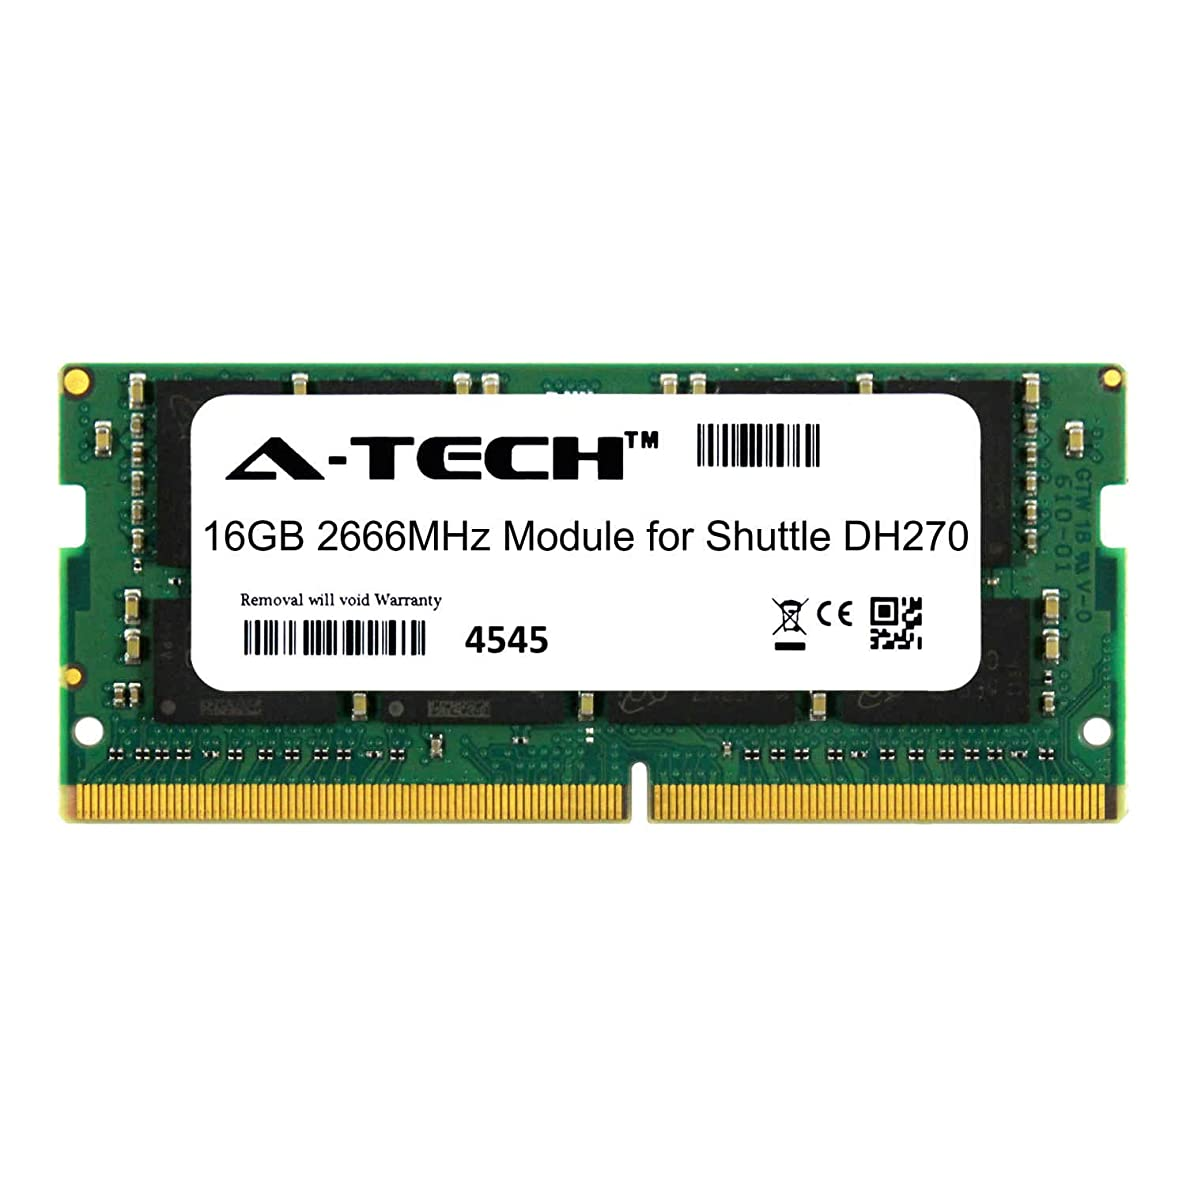 A-Tech 16GB Module for Shuttle DH270 Laptop & Notebook Compatible DDR4 2666Mhz Memory Ram (ATMS363968A25832X1)